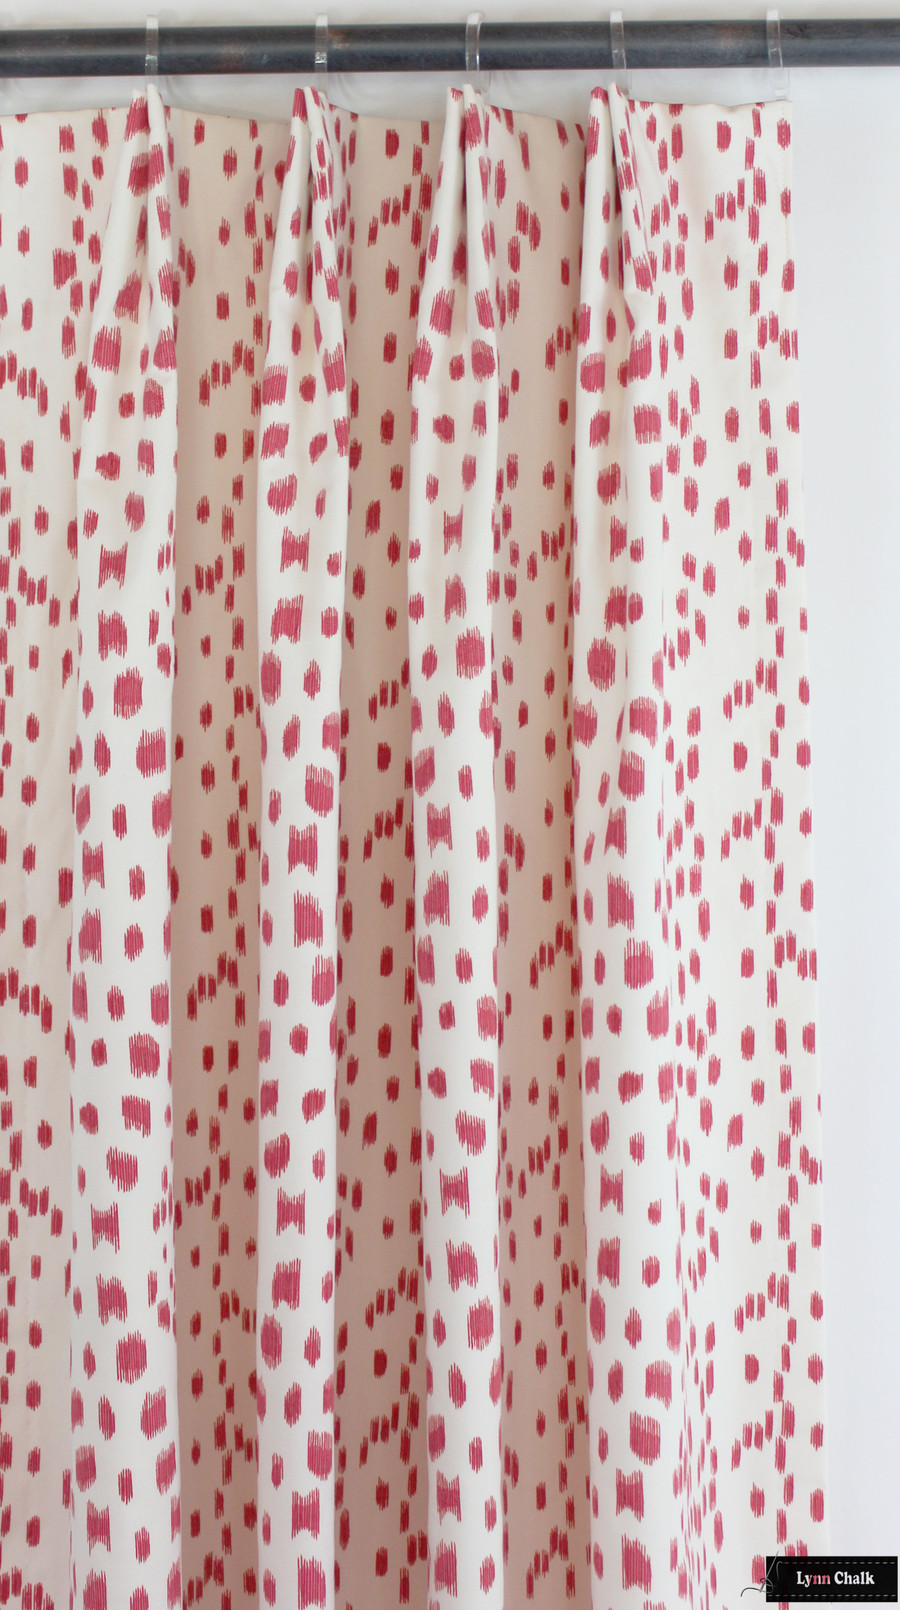 Brunschwig & Fils/Lee Jofa Les Touches Knife Edge Pillows in Pink